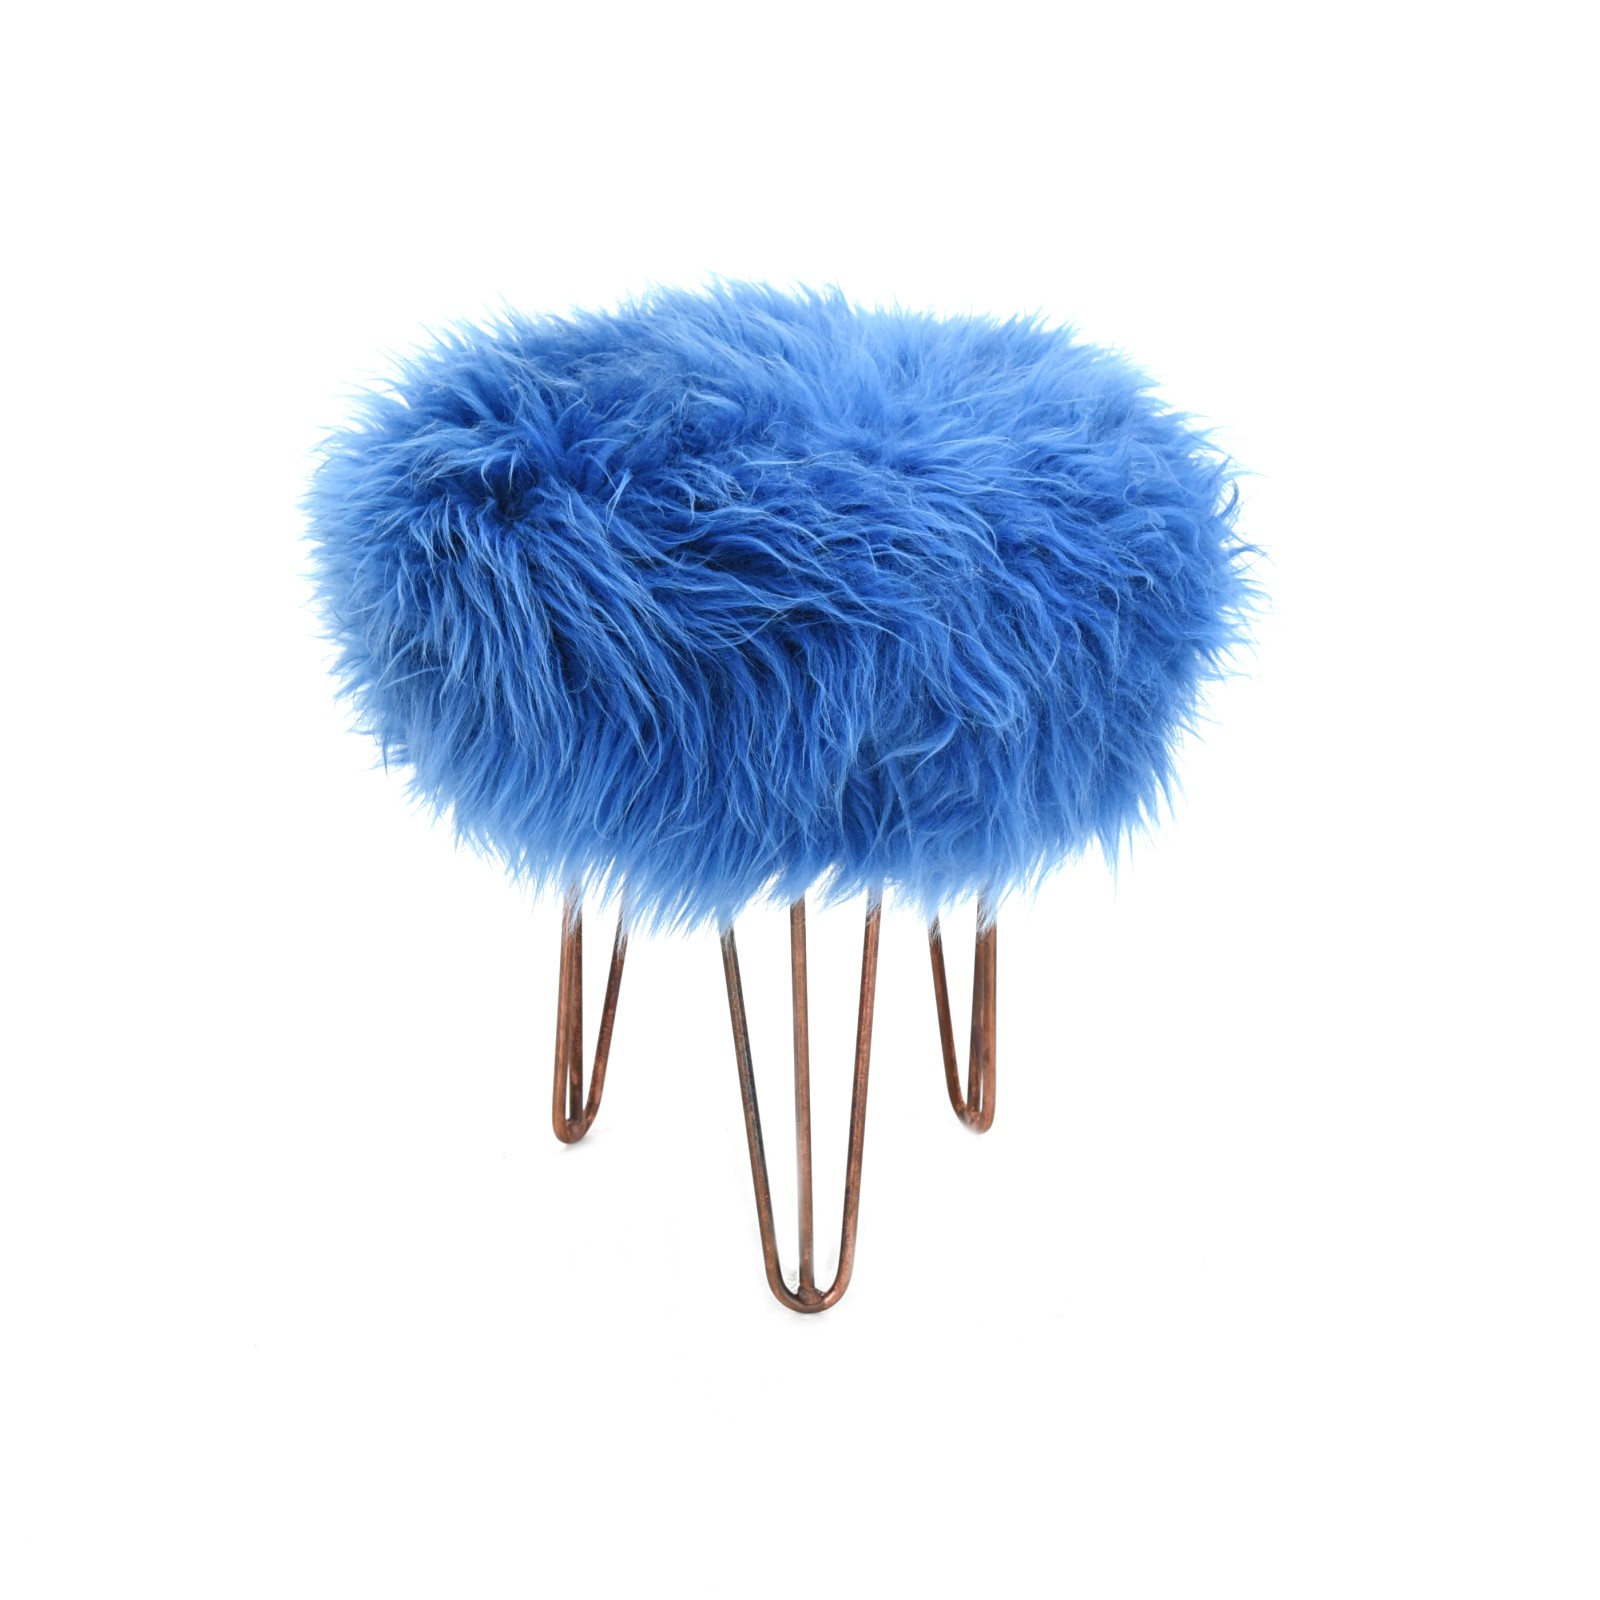 Rona Baa Stool in Cornflower Blue